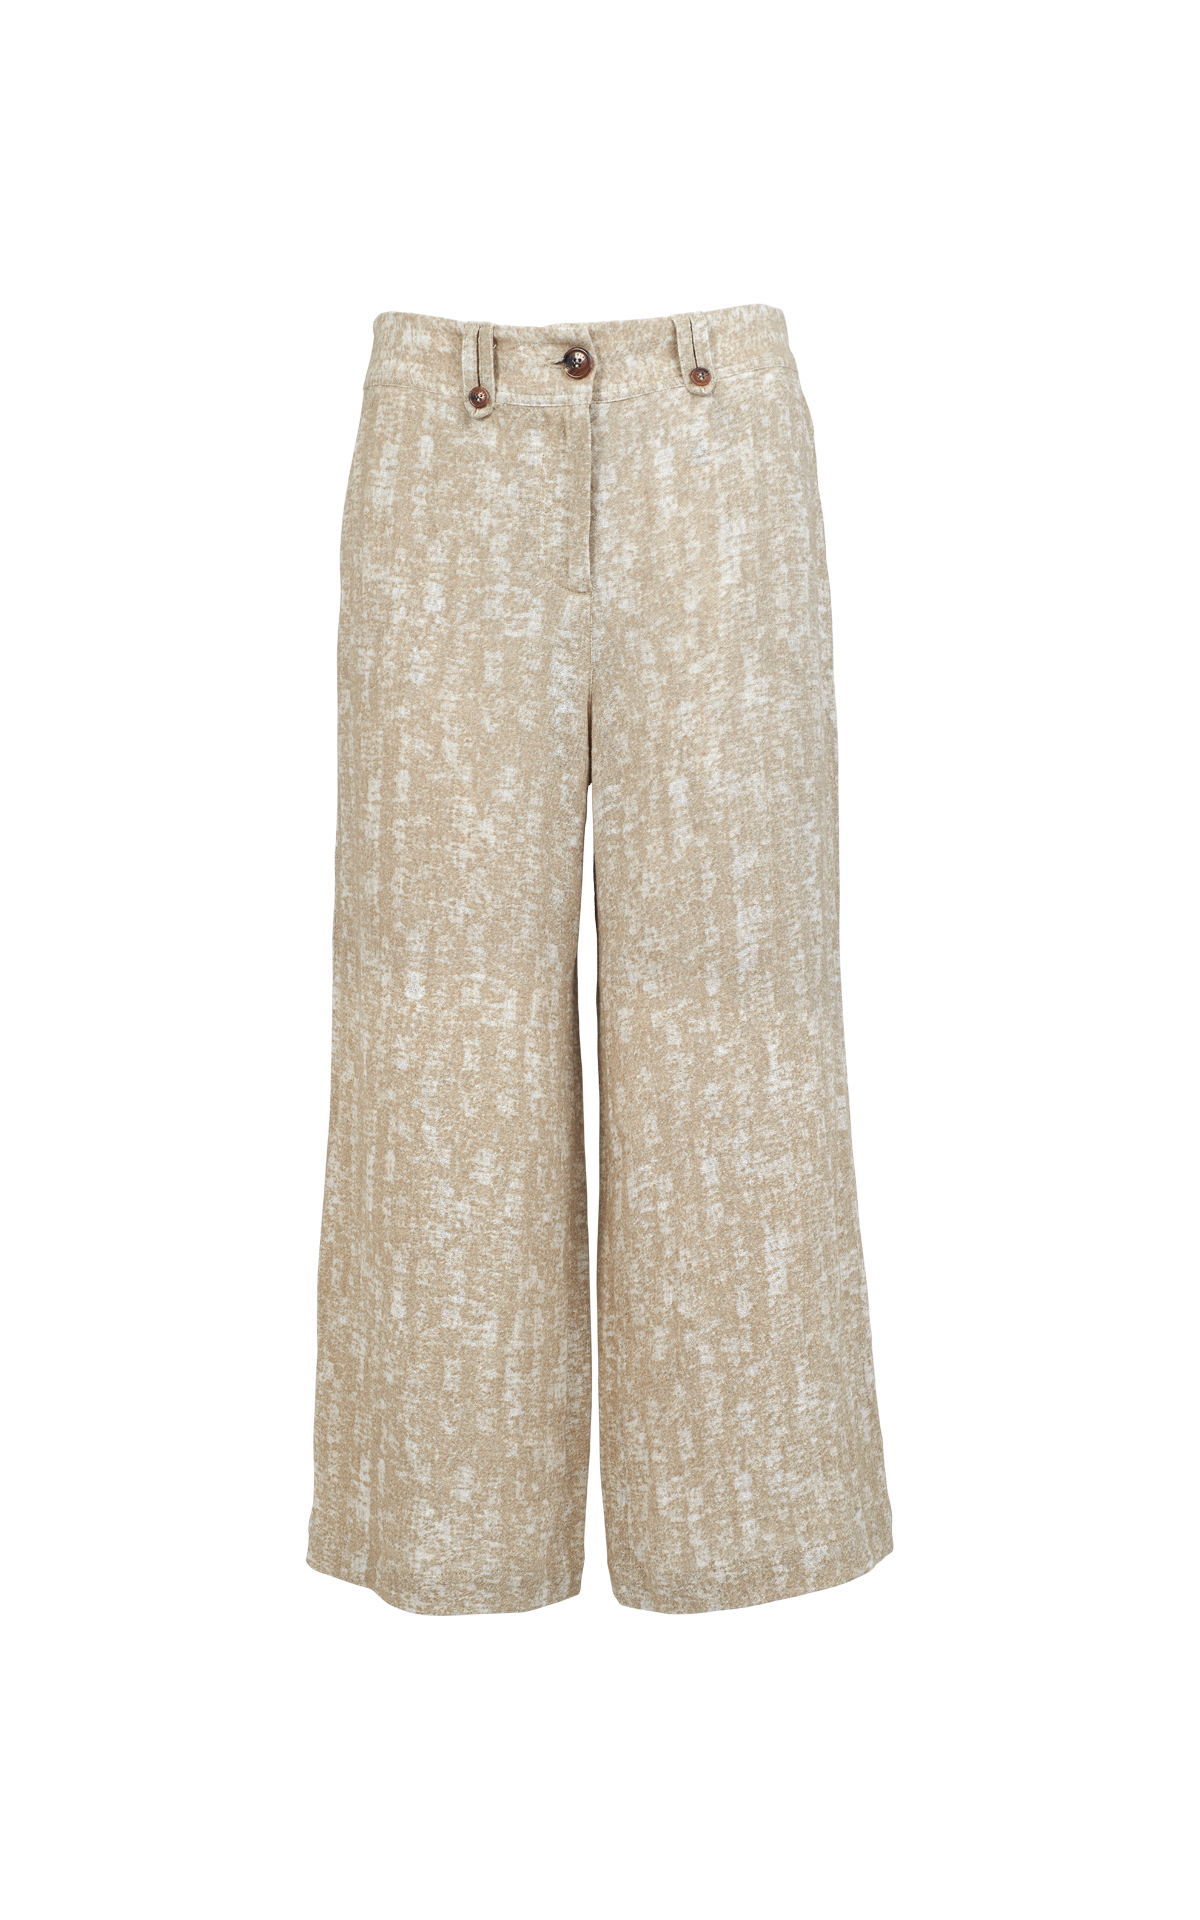 Beige linen trousers Adolfo Dominguez